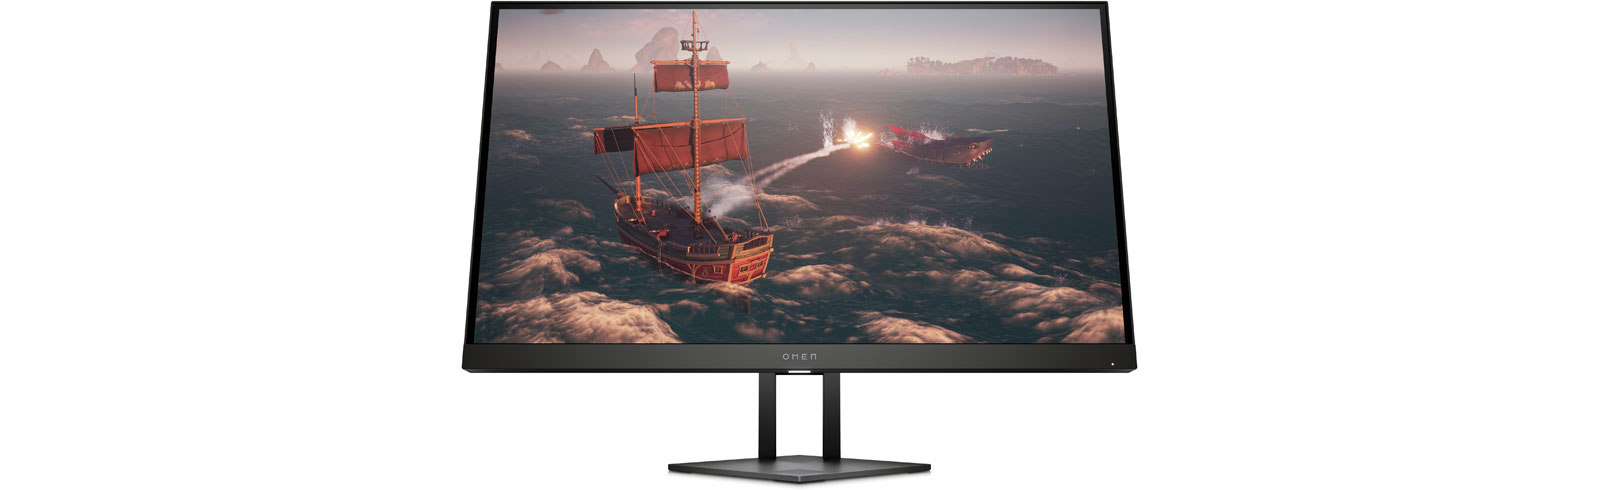 HP unveils the OMEN 27i Gaming Monitor, updates the OMEN logo